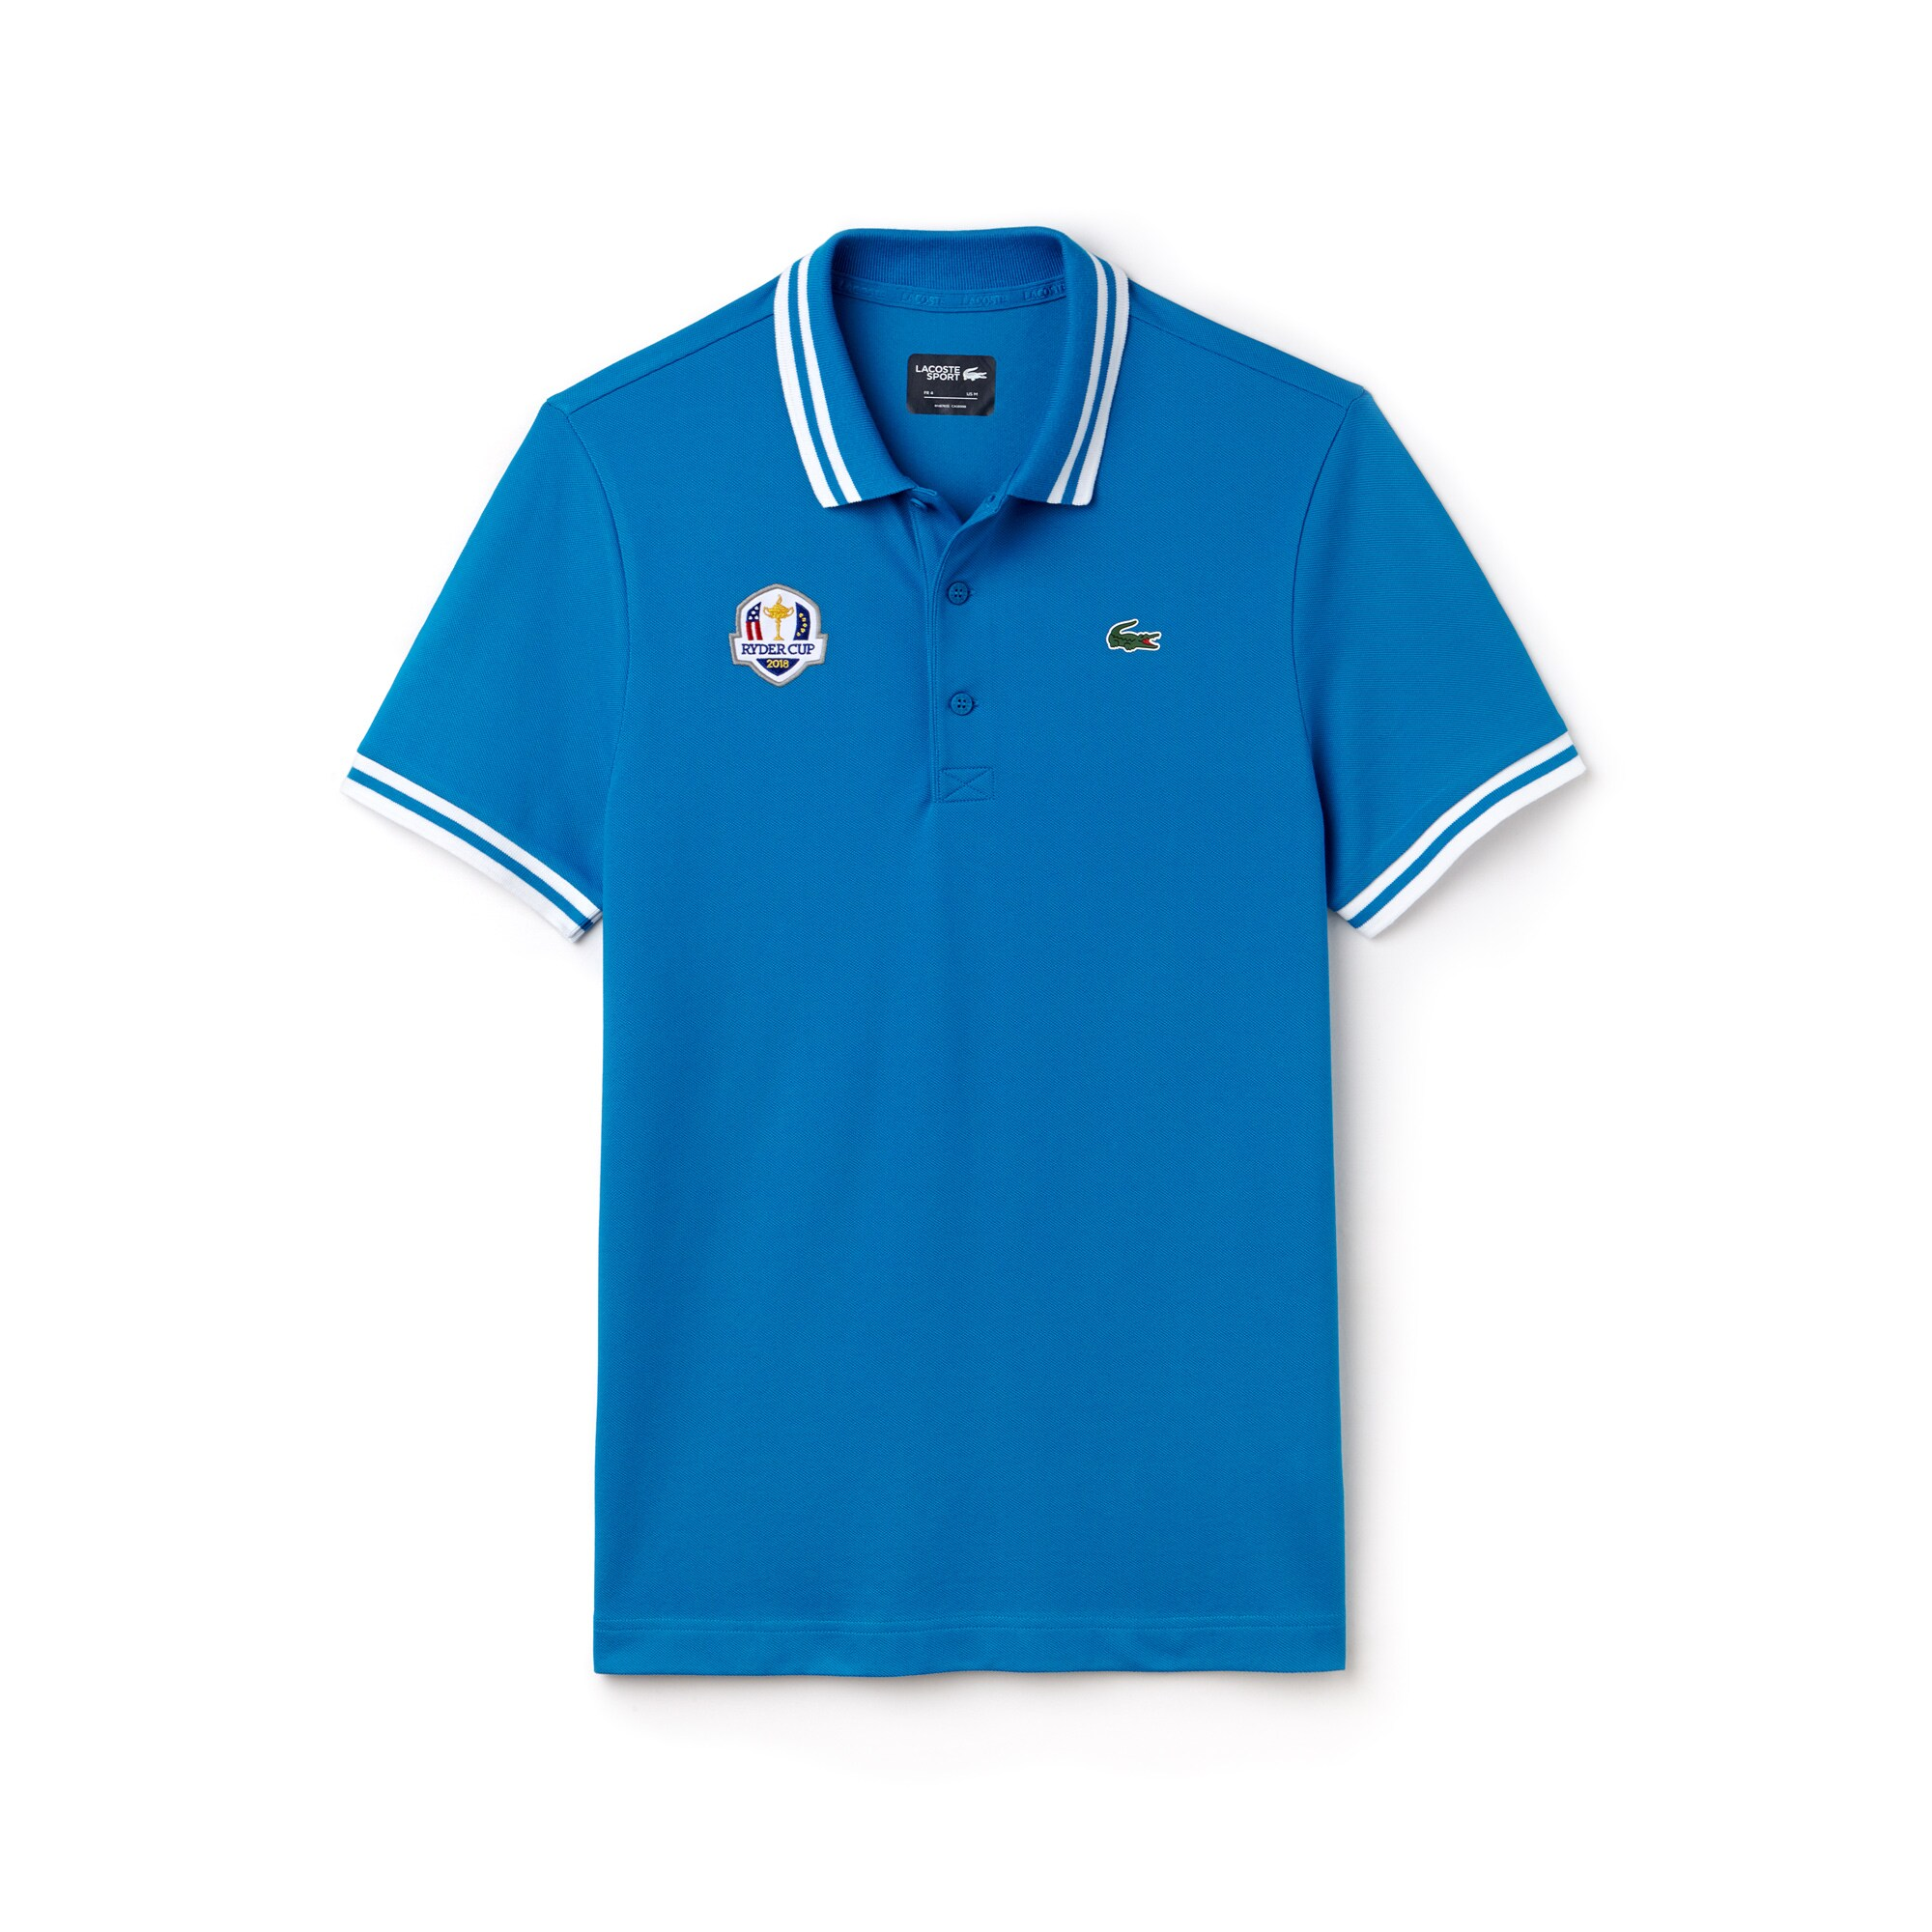 Lacoste - Herren LACOSTE SPORT Ryder Cup Edition Golf Poloshirt - 3